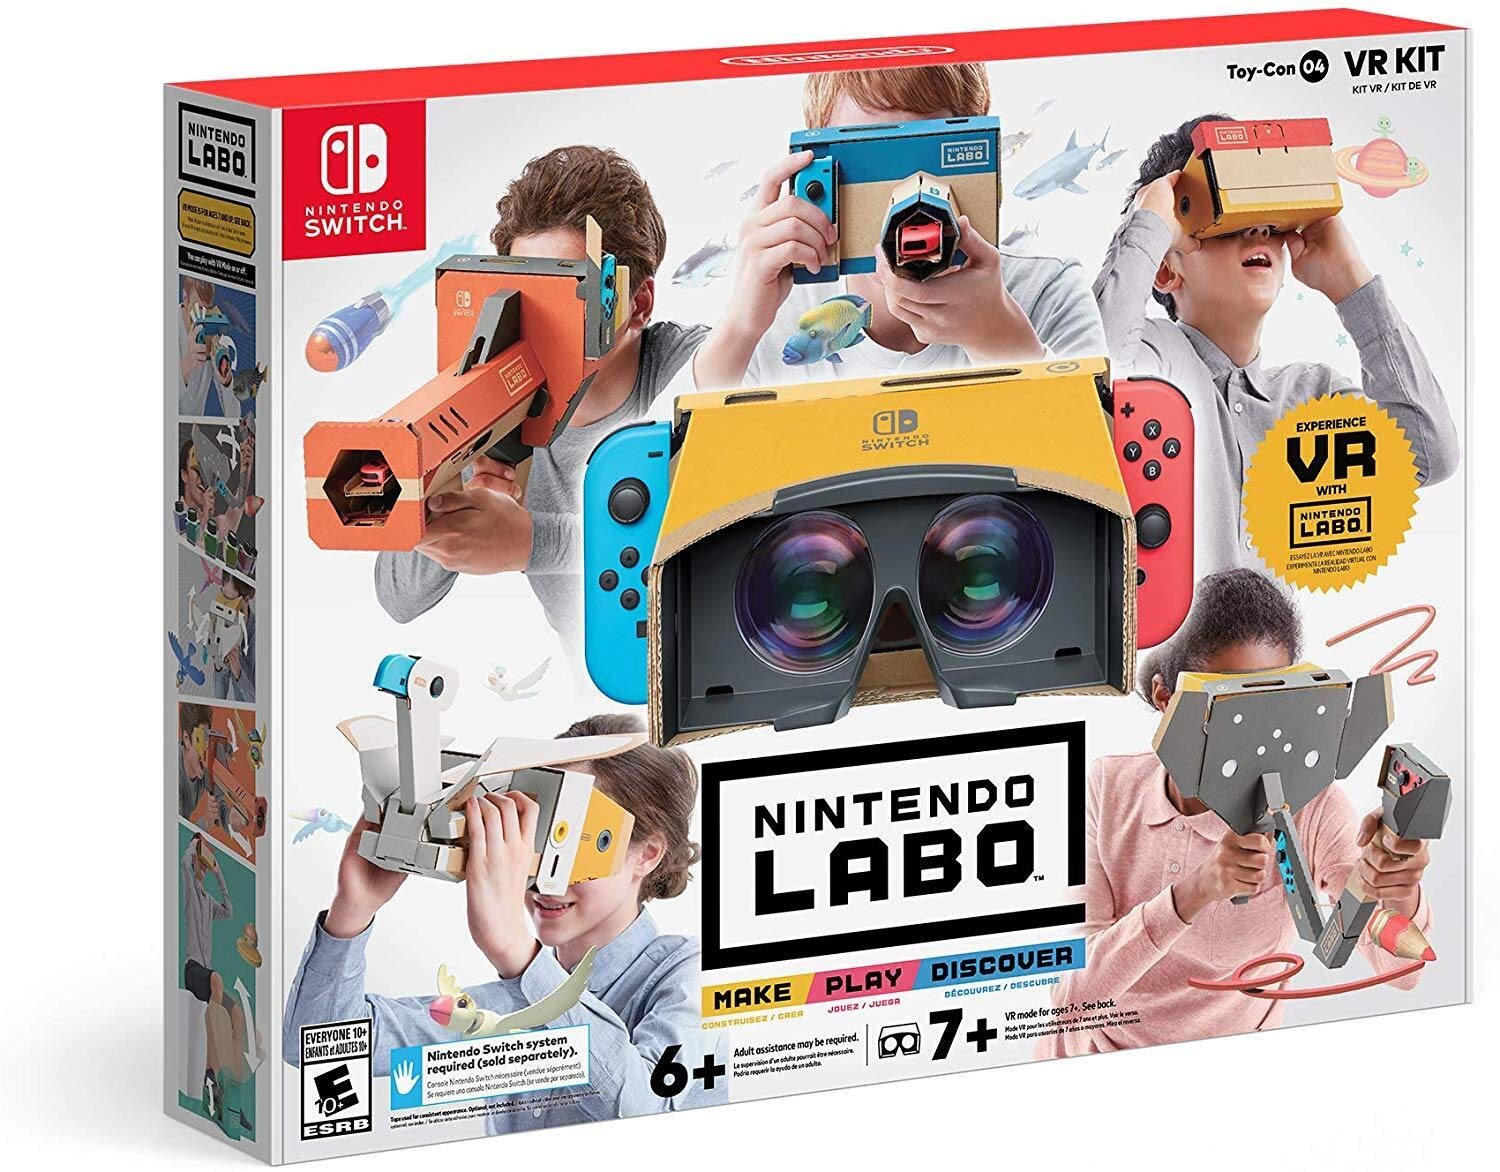 Nintendo Labo Toy-Con 04: VR Kit for Nintendo Switch USA: Amazon ...